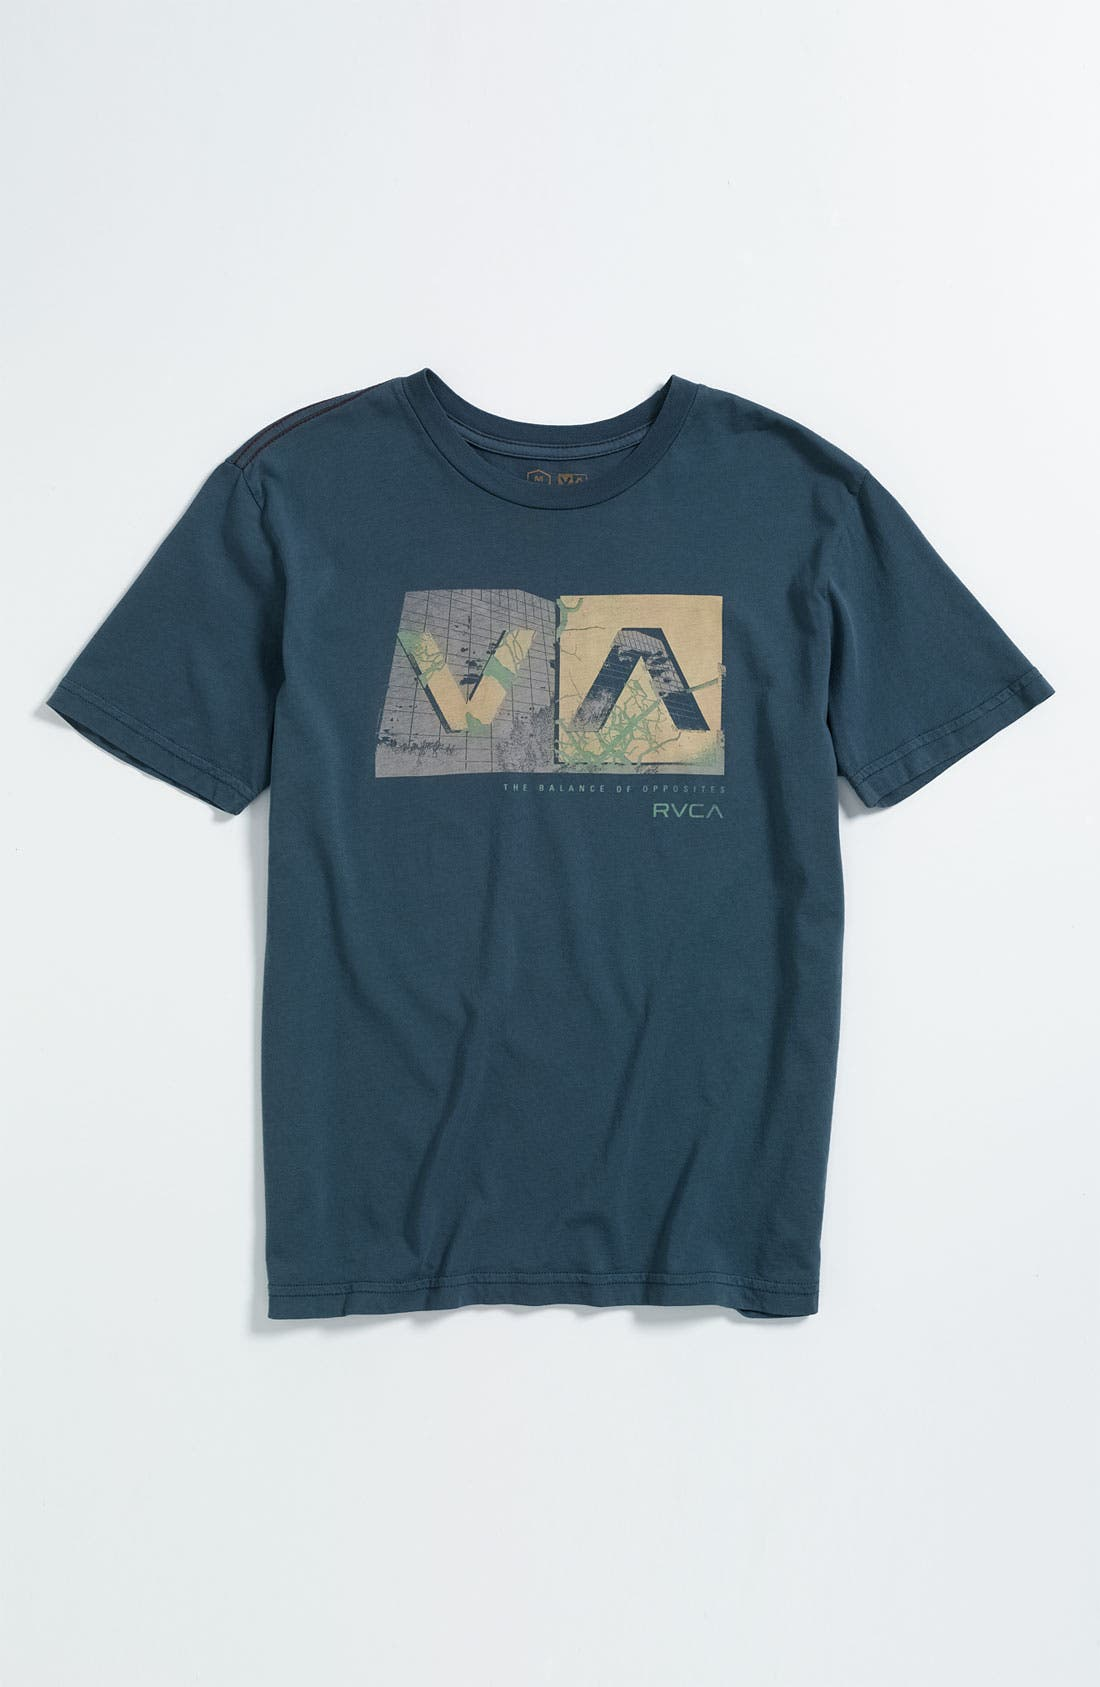 Alternate Image 1 Selected - RVCA 'Branch Box' T-Shirt (Big Boys)